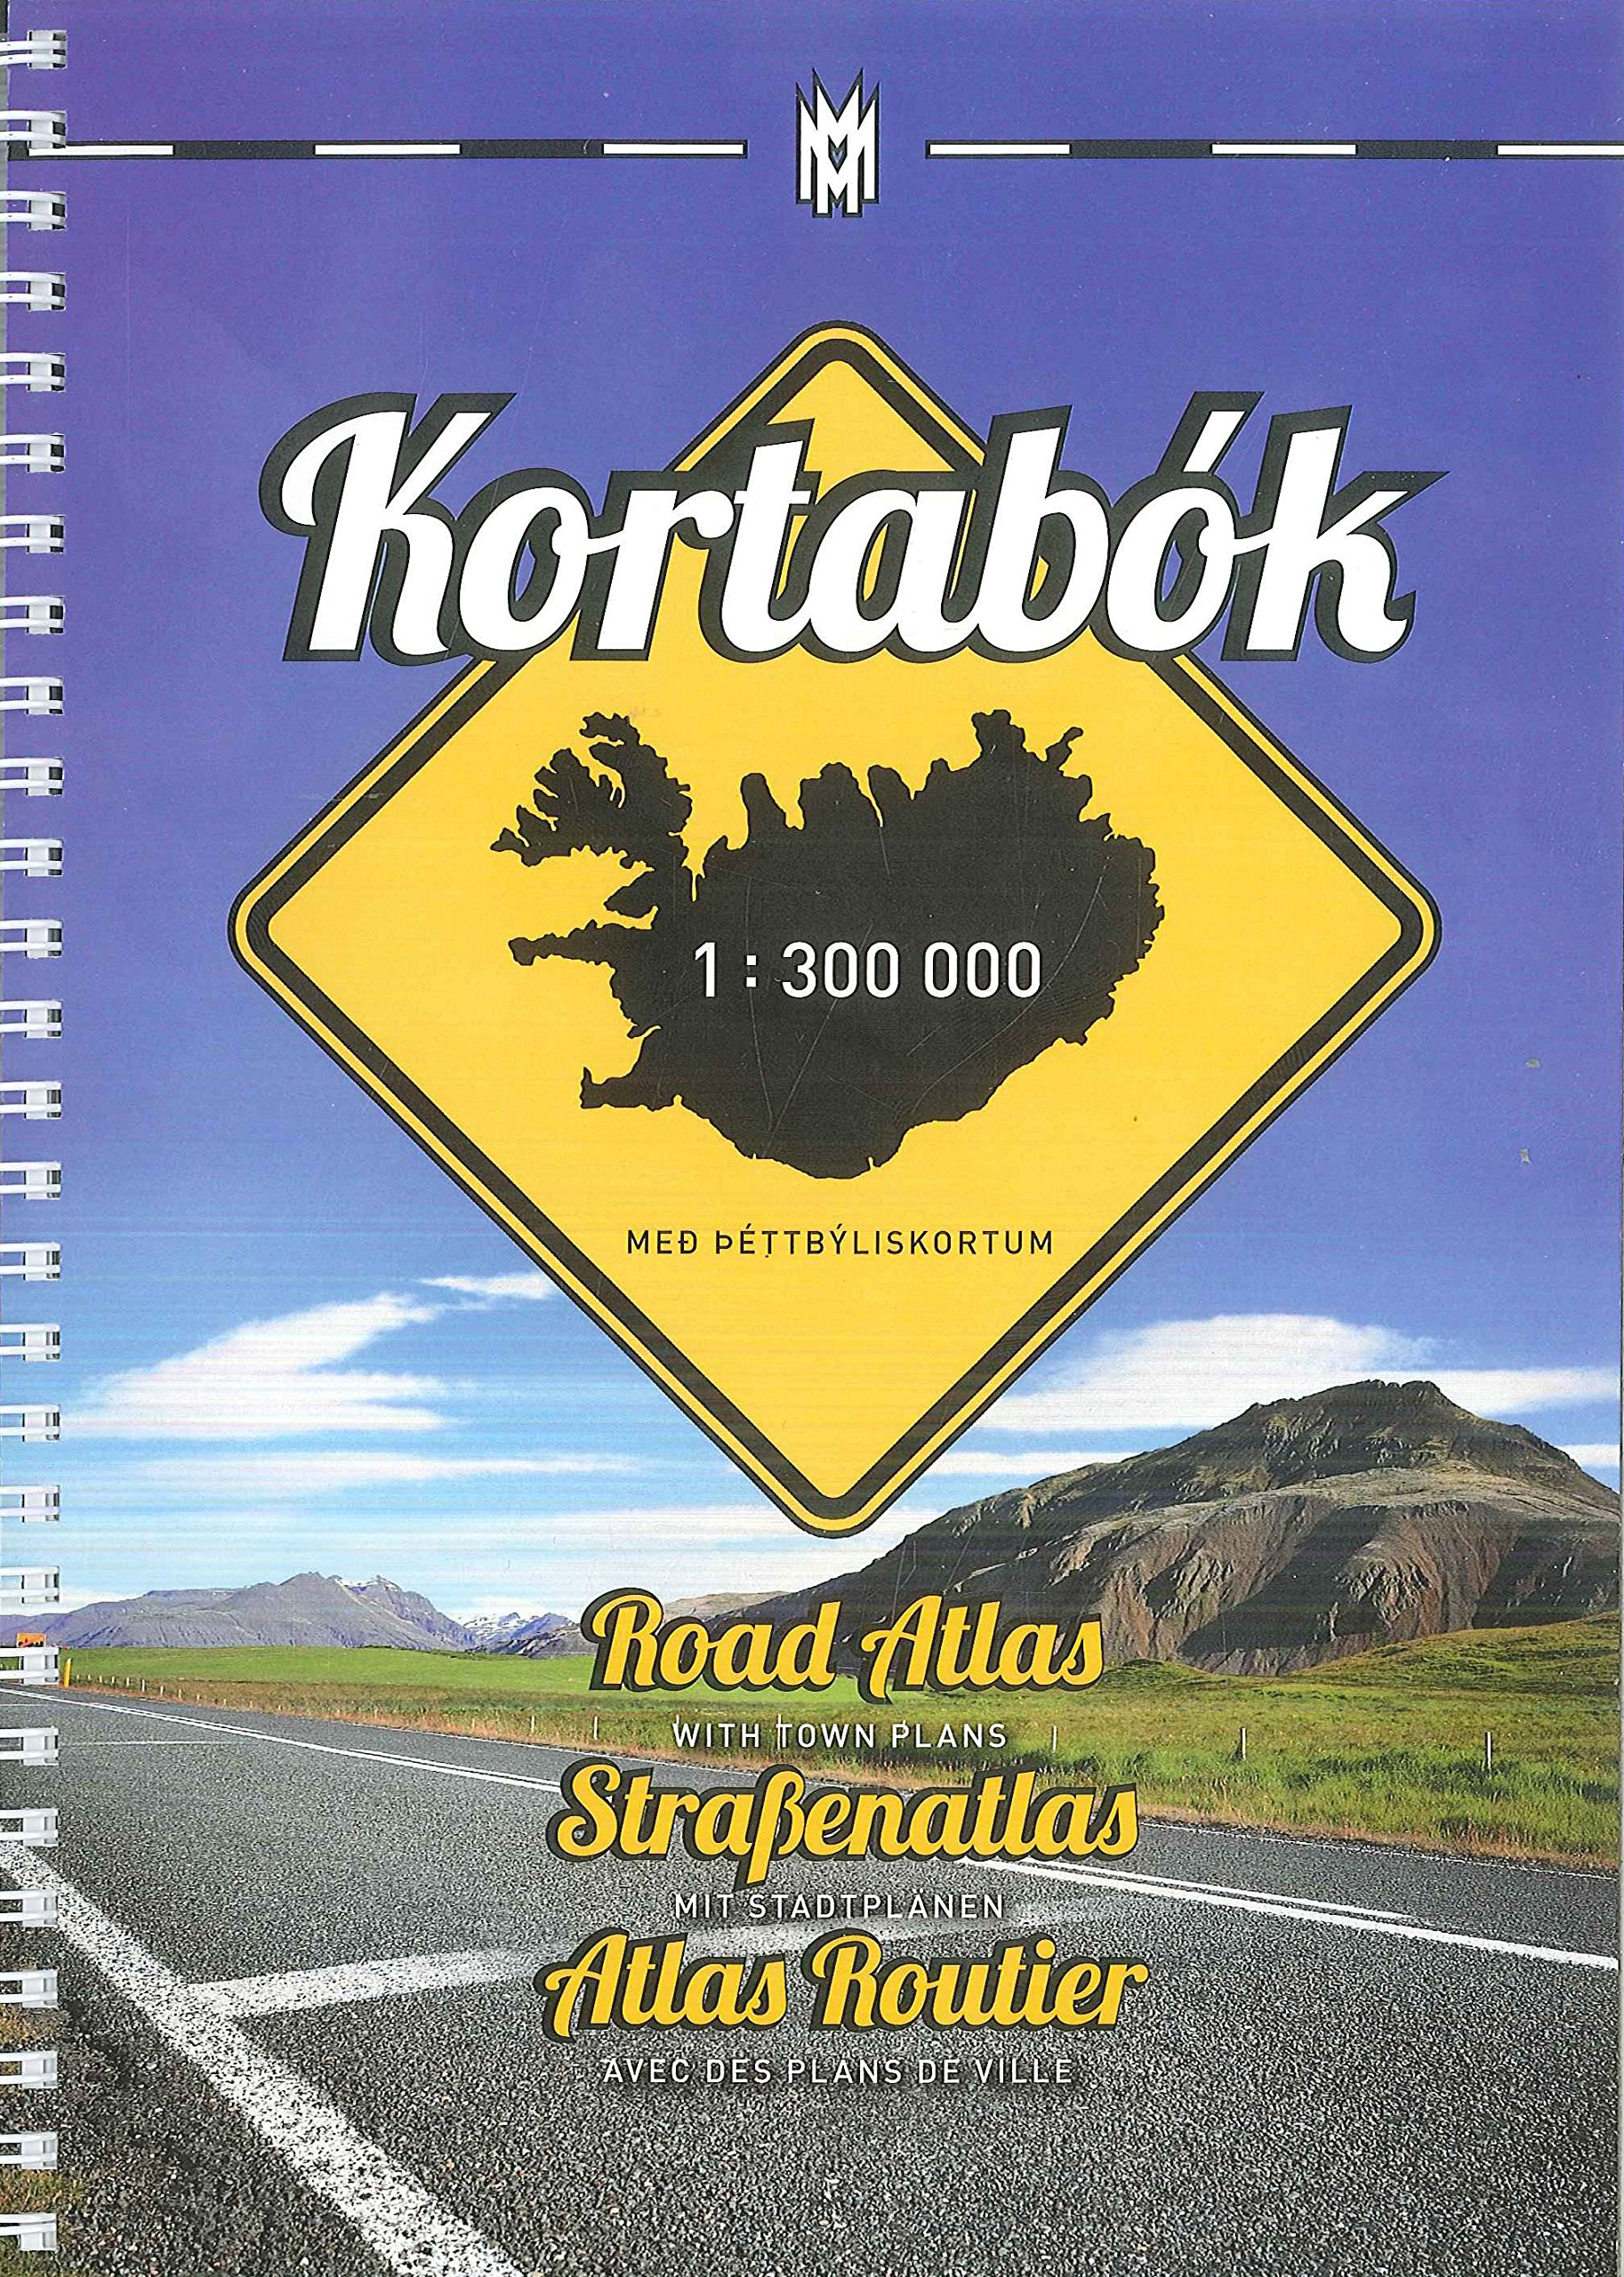 Iceland Road Atlas, with Town Plans, 2015-2016 2015: 9789979335719 ...